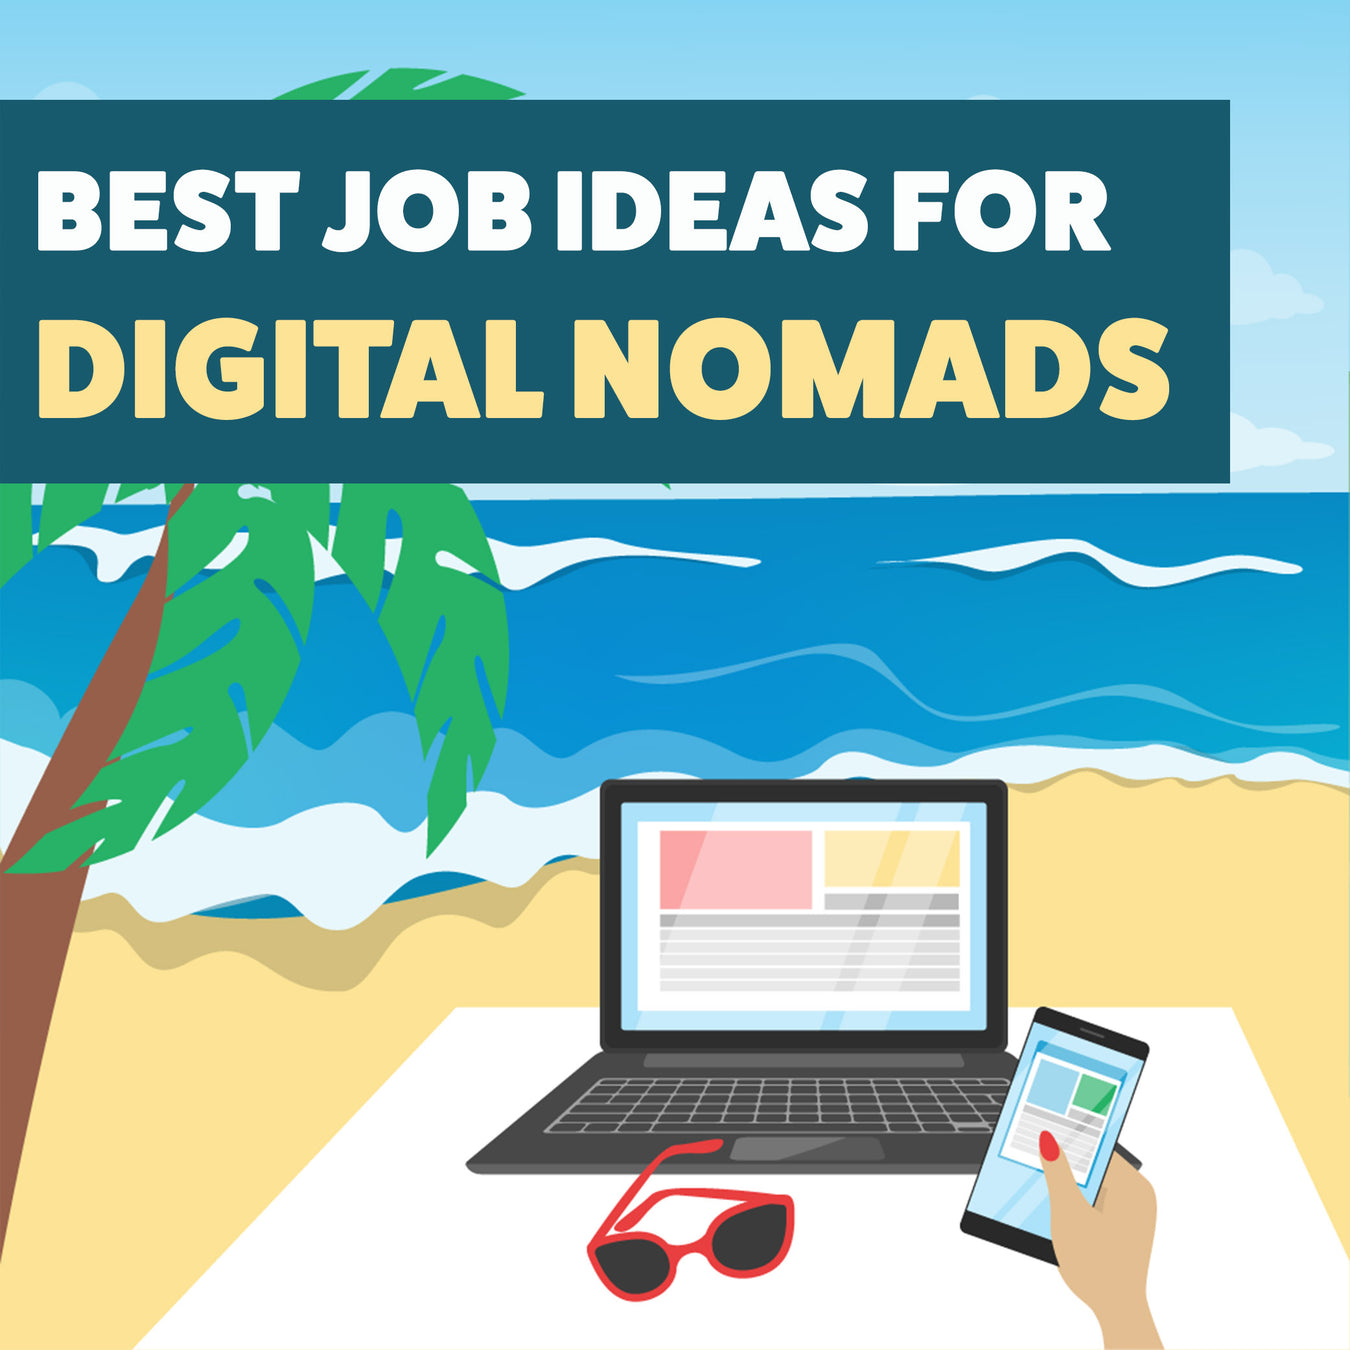 Best Job Ideas For Digital Nomads